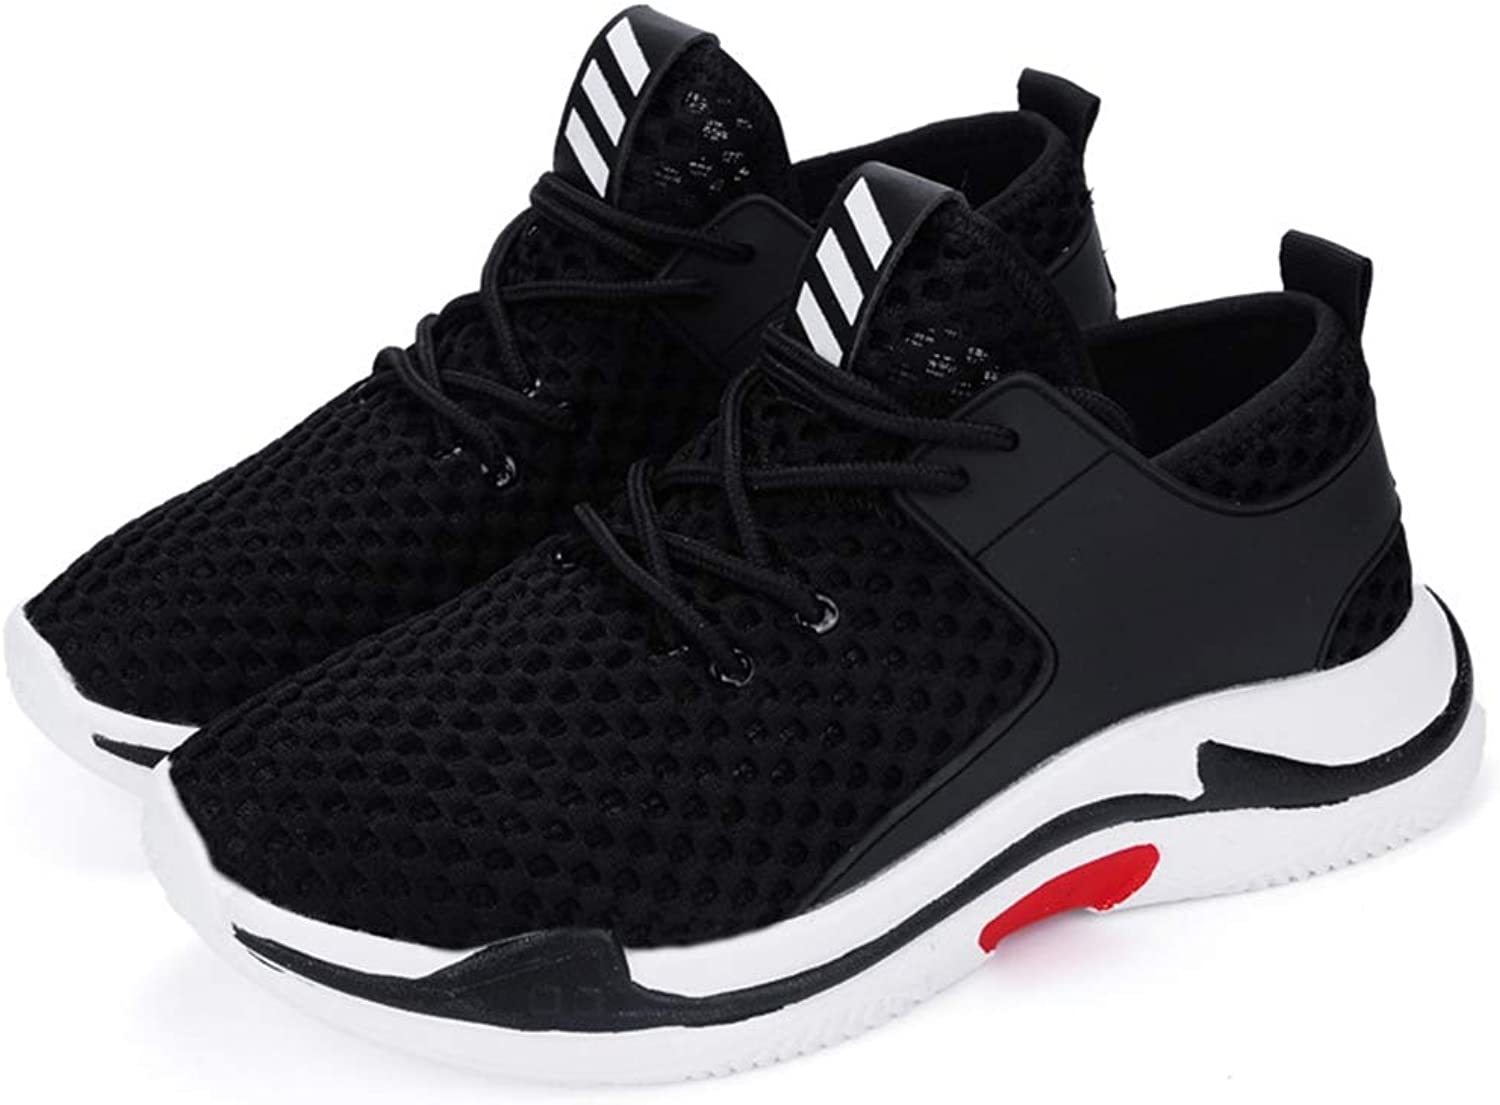 Kyle Walsh Pa Women Breathable Flats Casual Fashion Female Sneakers Leisure Footwears